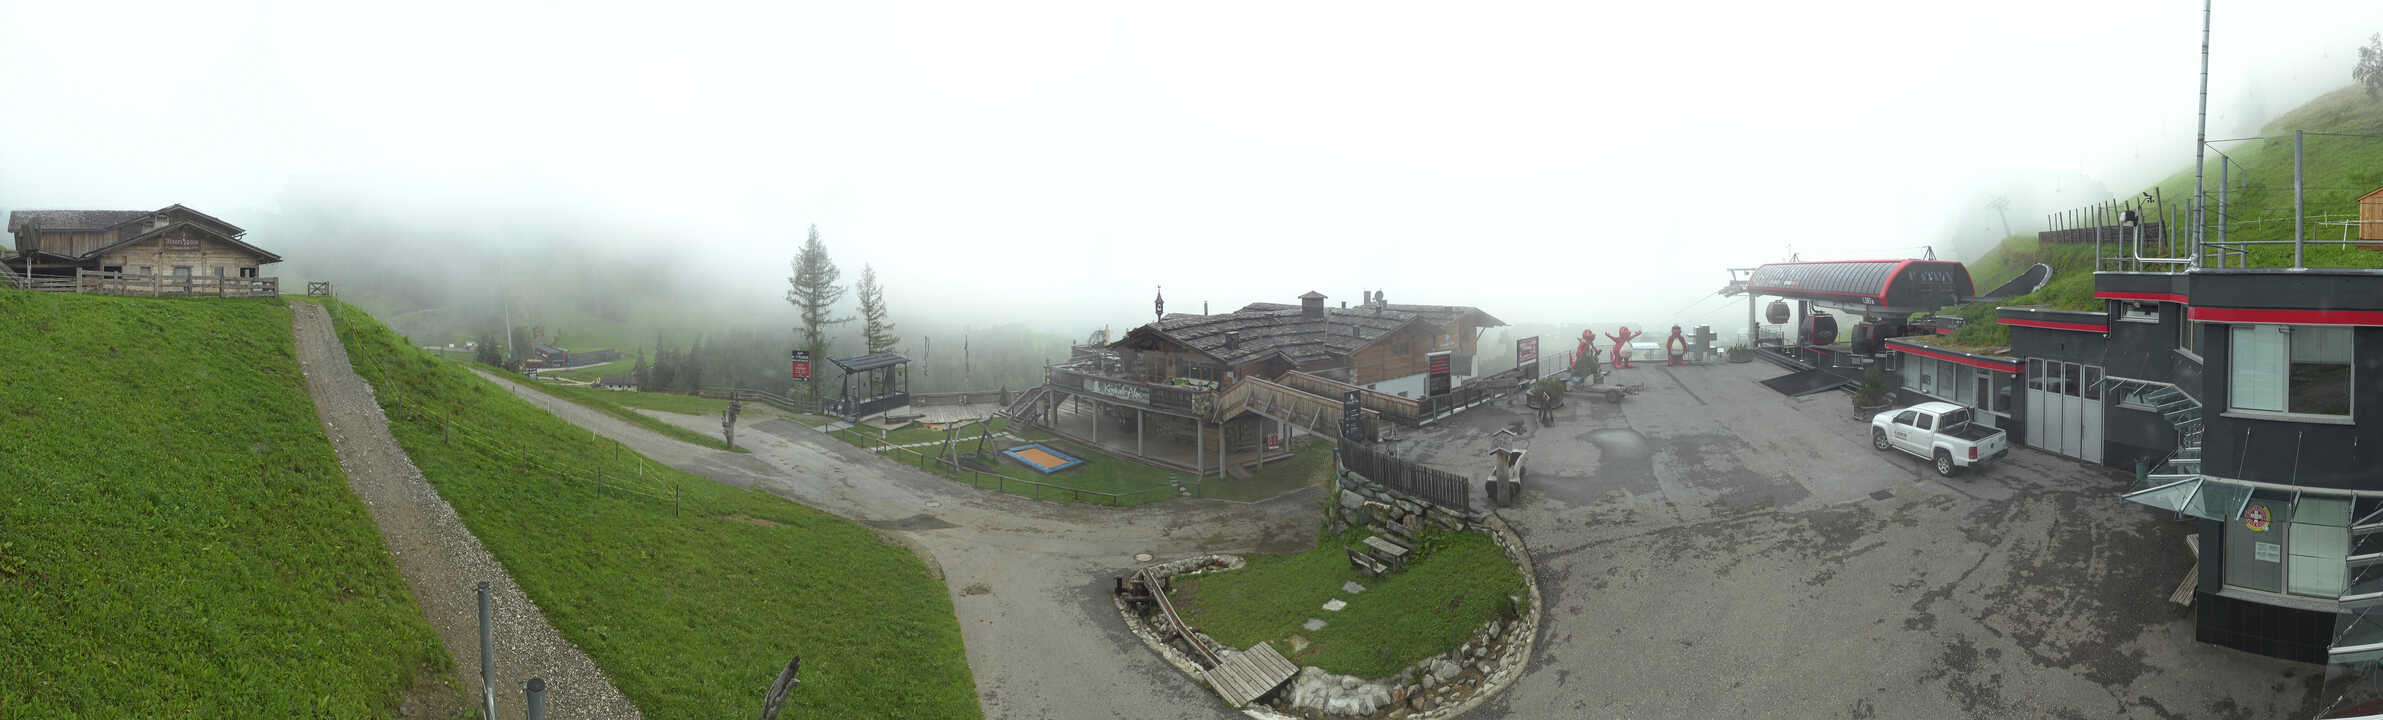 Webcam Klausberg - mountain station